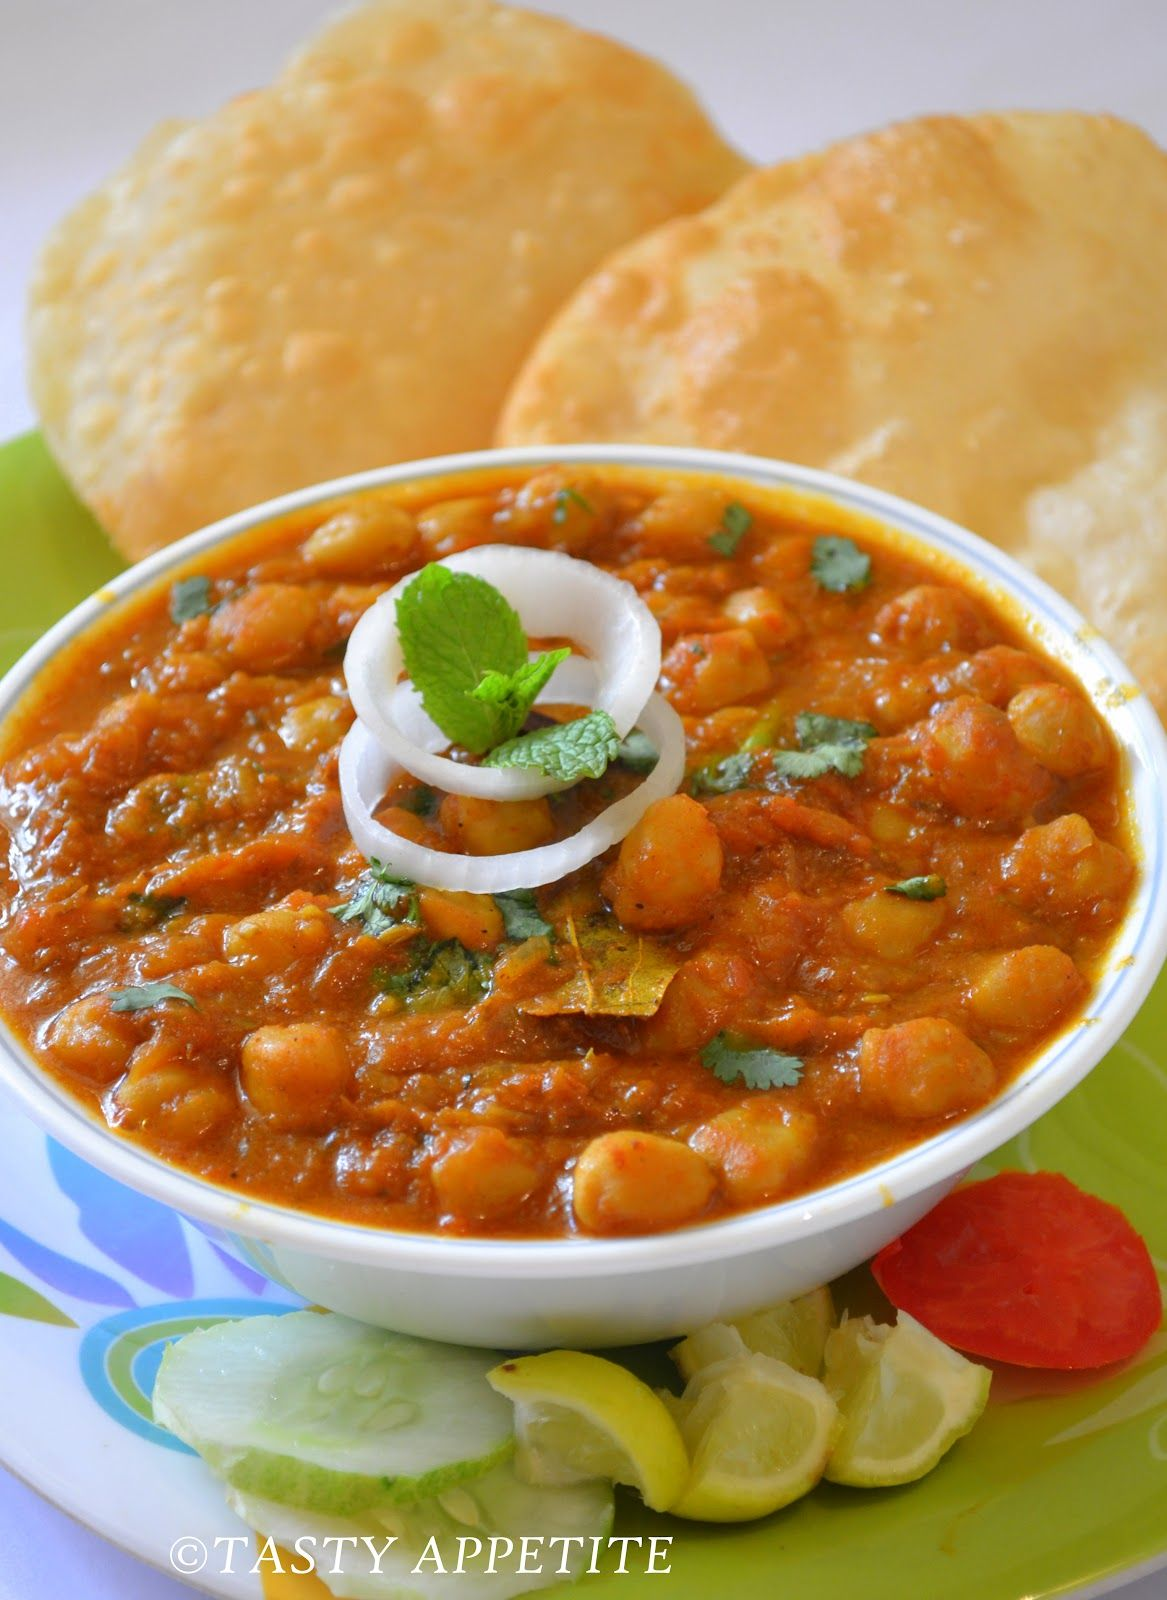 Subscribe here for more video recipes chole bhature chole bhature subscribe here for more video recipes chole bhature chole bhature is one of the mouth watering spicy exotic dish from punj forumfinder Choice Image